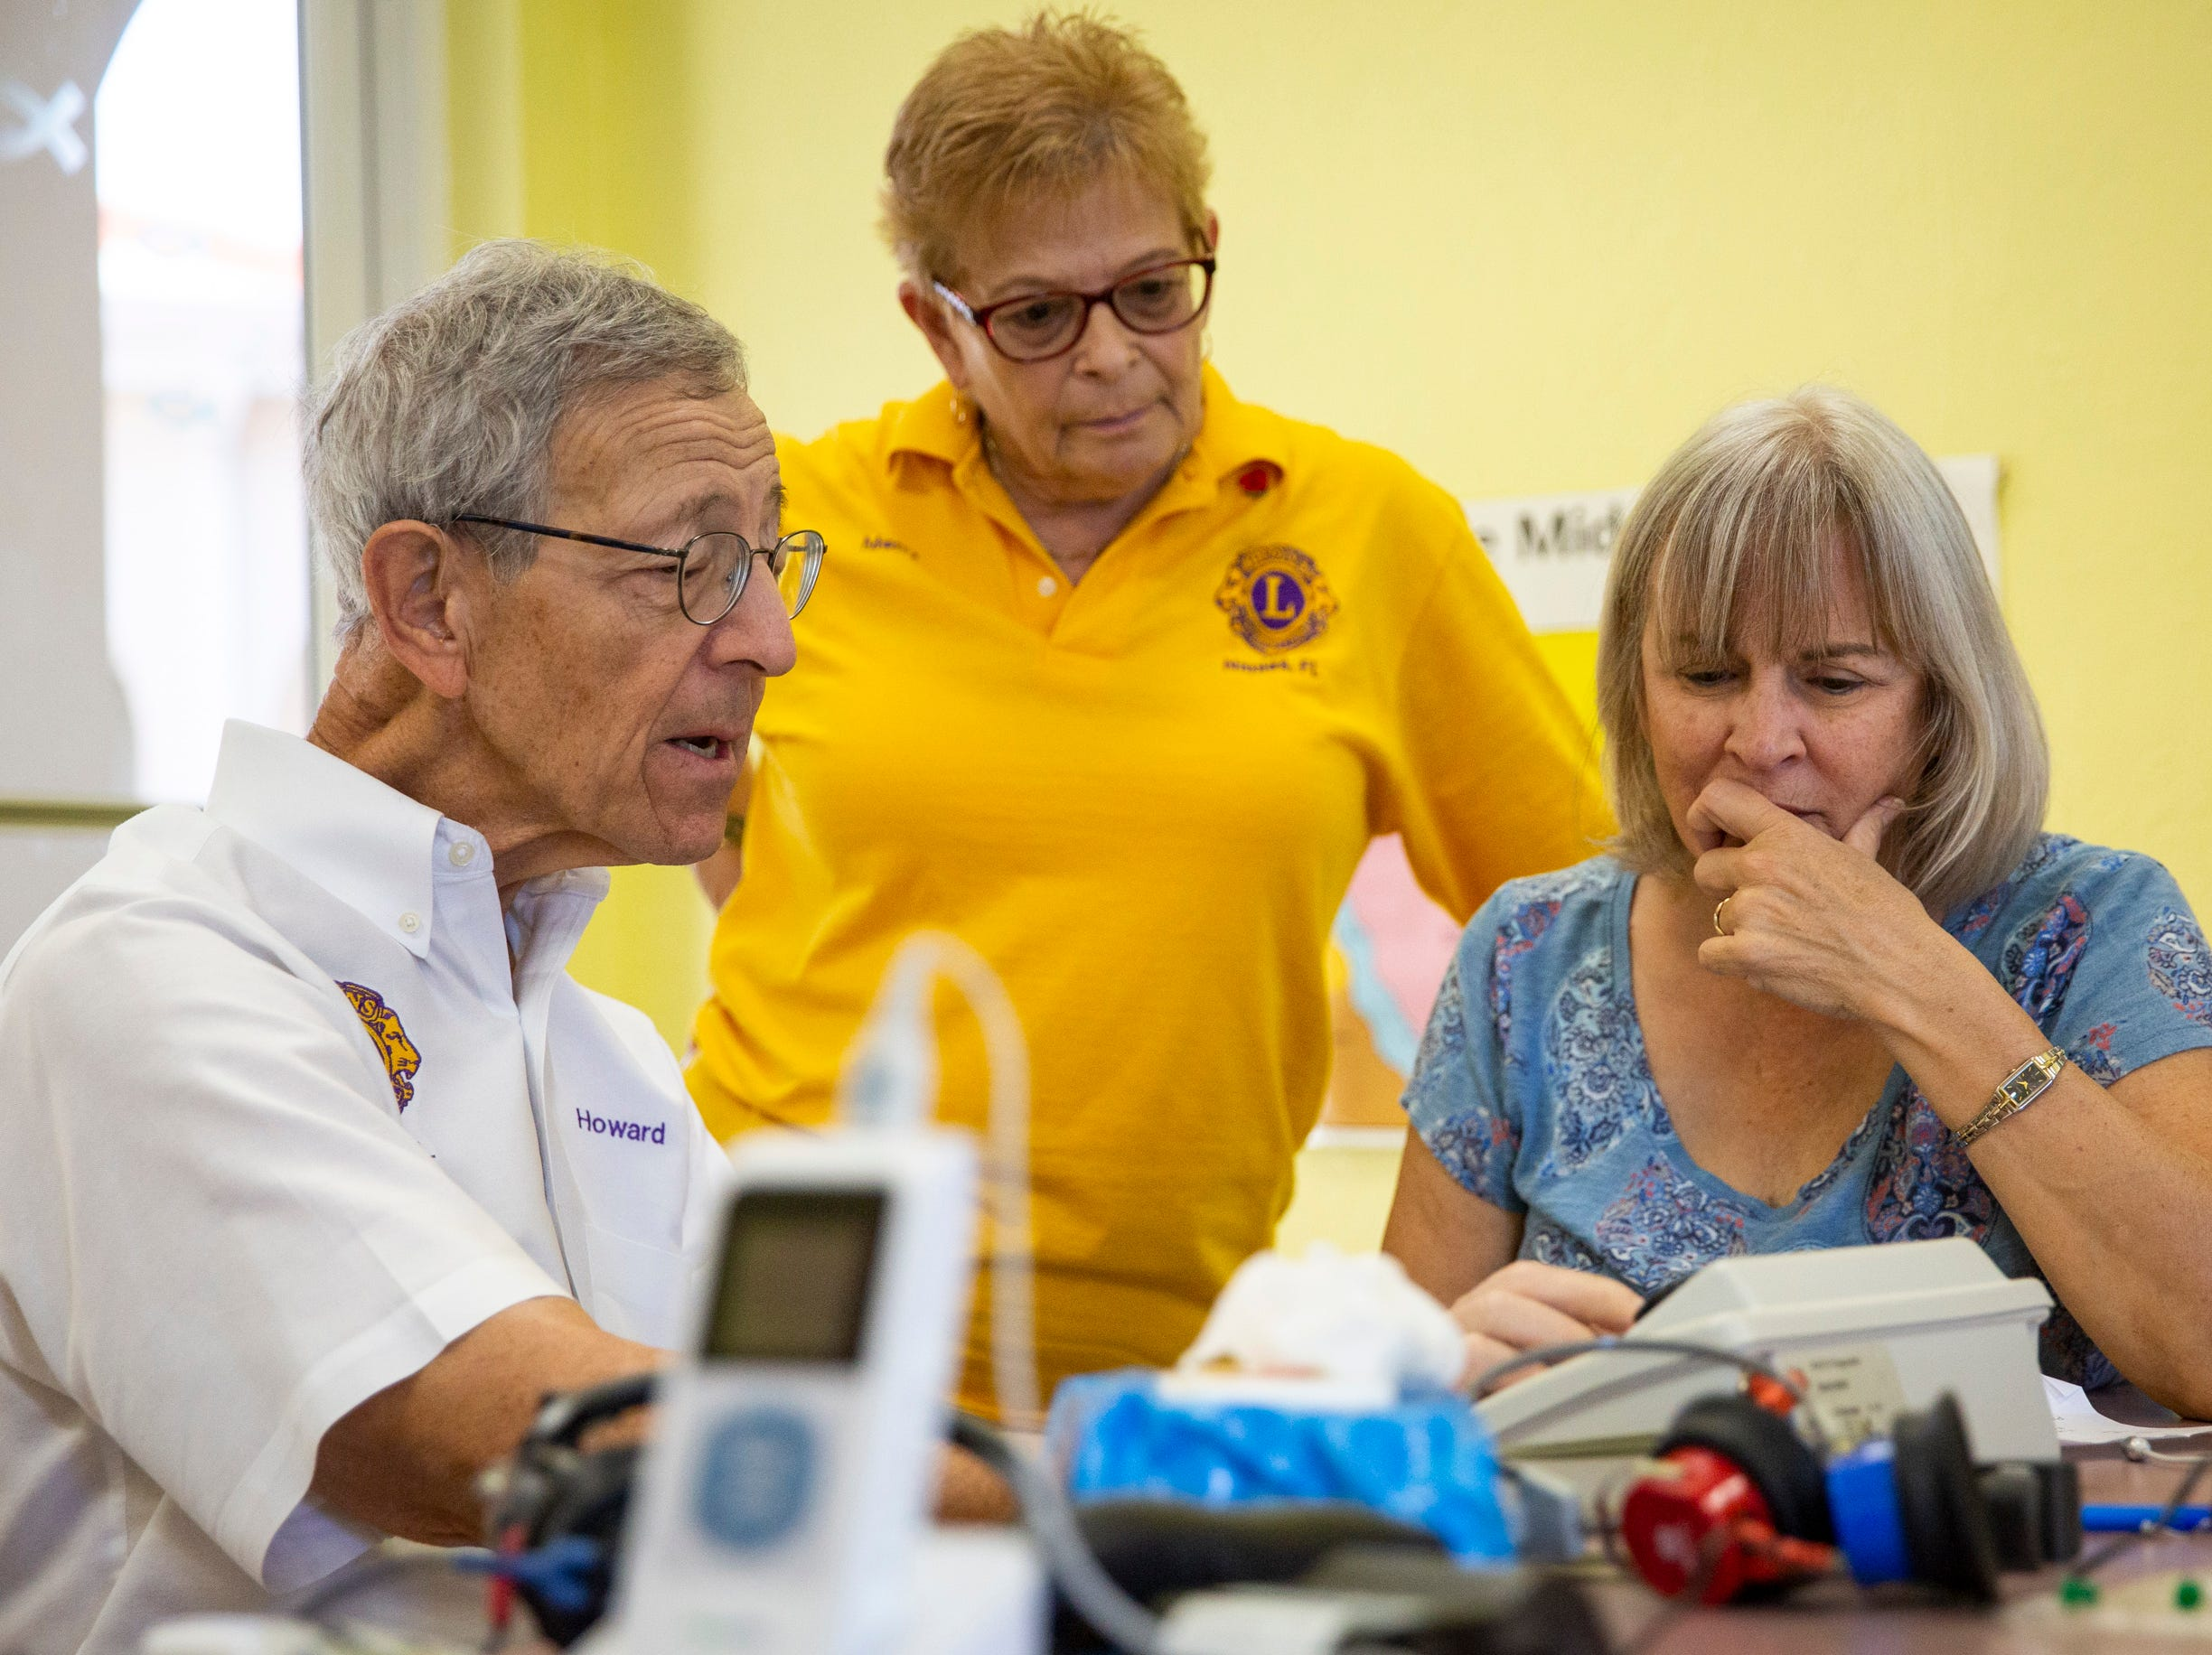 Dr. Howard Freedman, left, shows Merry Hovey, center, and Diane Leone, right, how to use a machine to test hearing at Grace Lutheran Preschool in Naples on Friday, April 12, 2019. Freedman is a retired pediatric eye doctor and now spends his time working with the Naples Lions Club to provide free screenings to children and adults in the area.